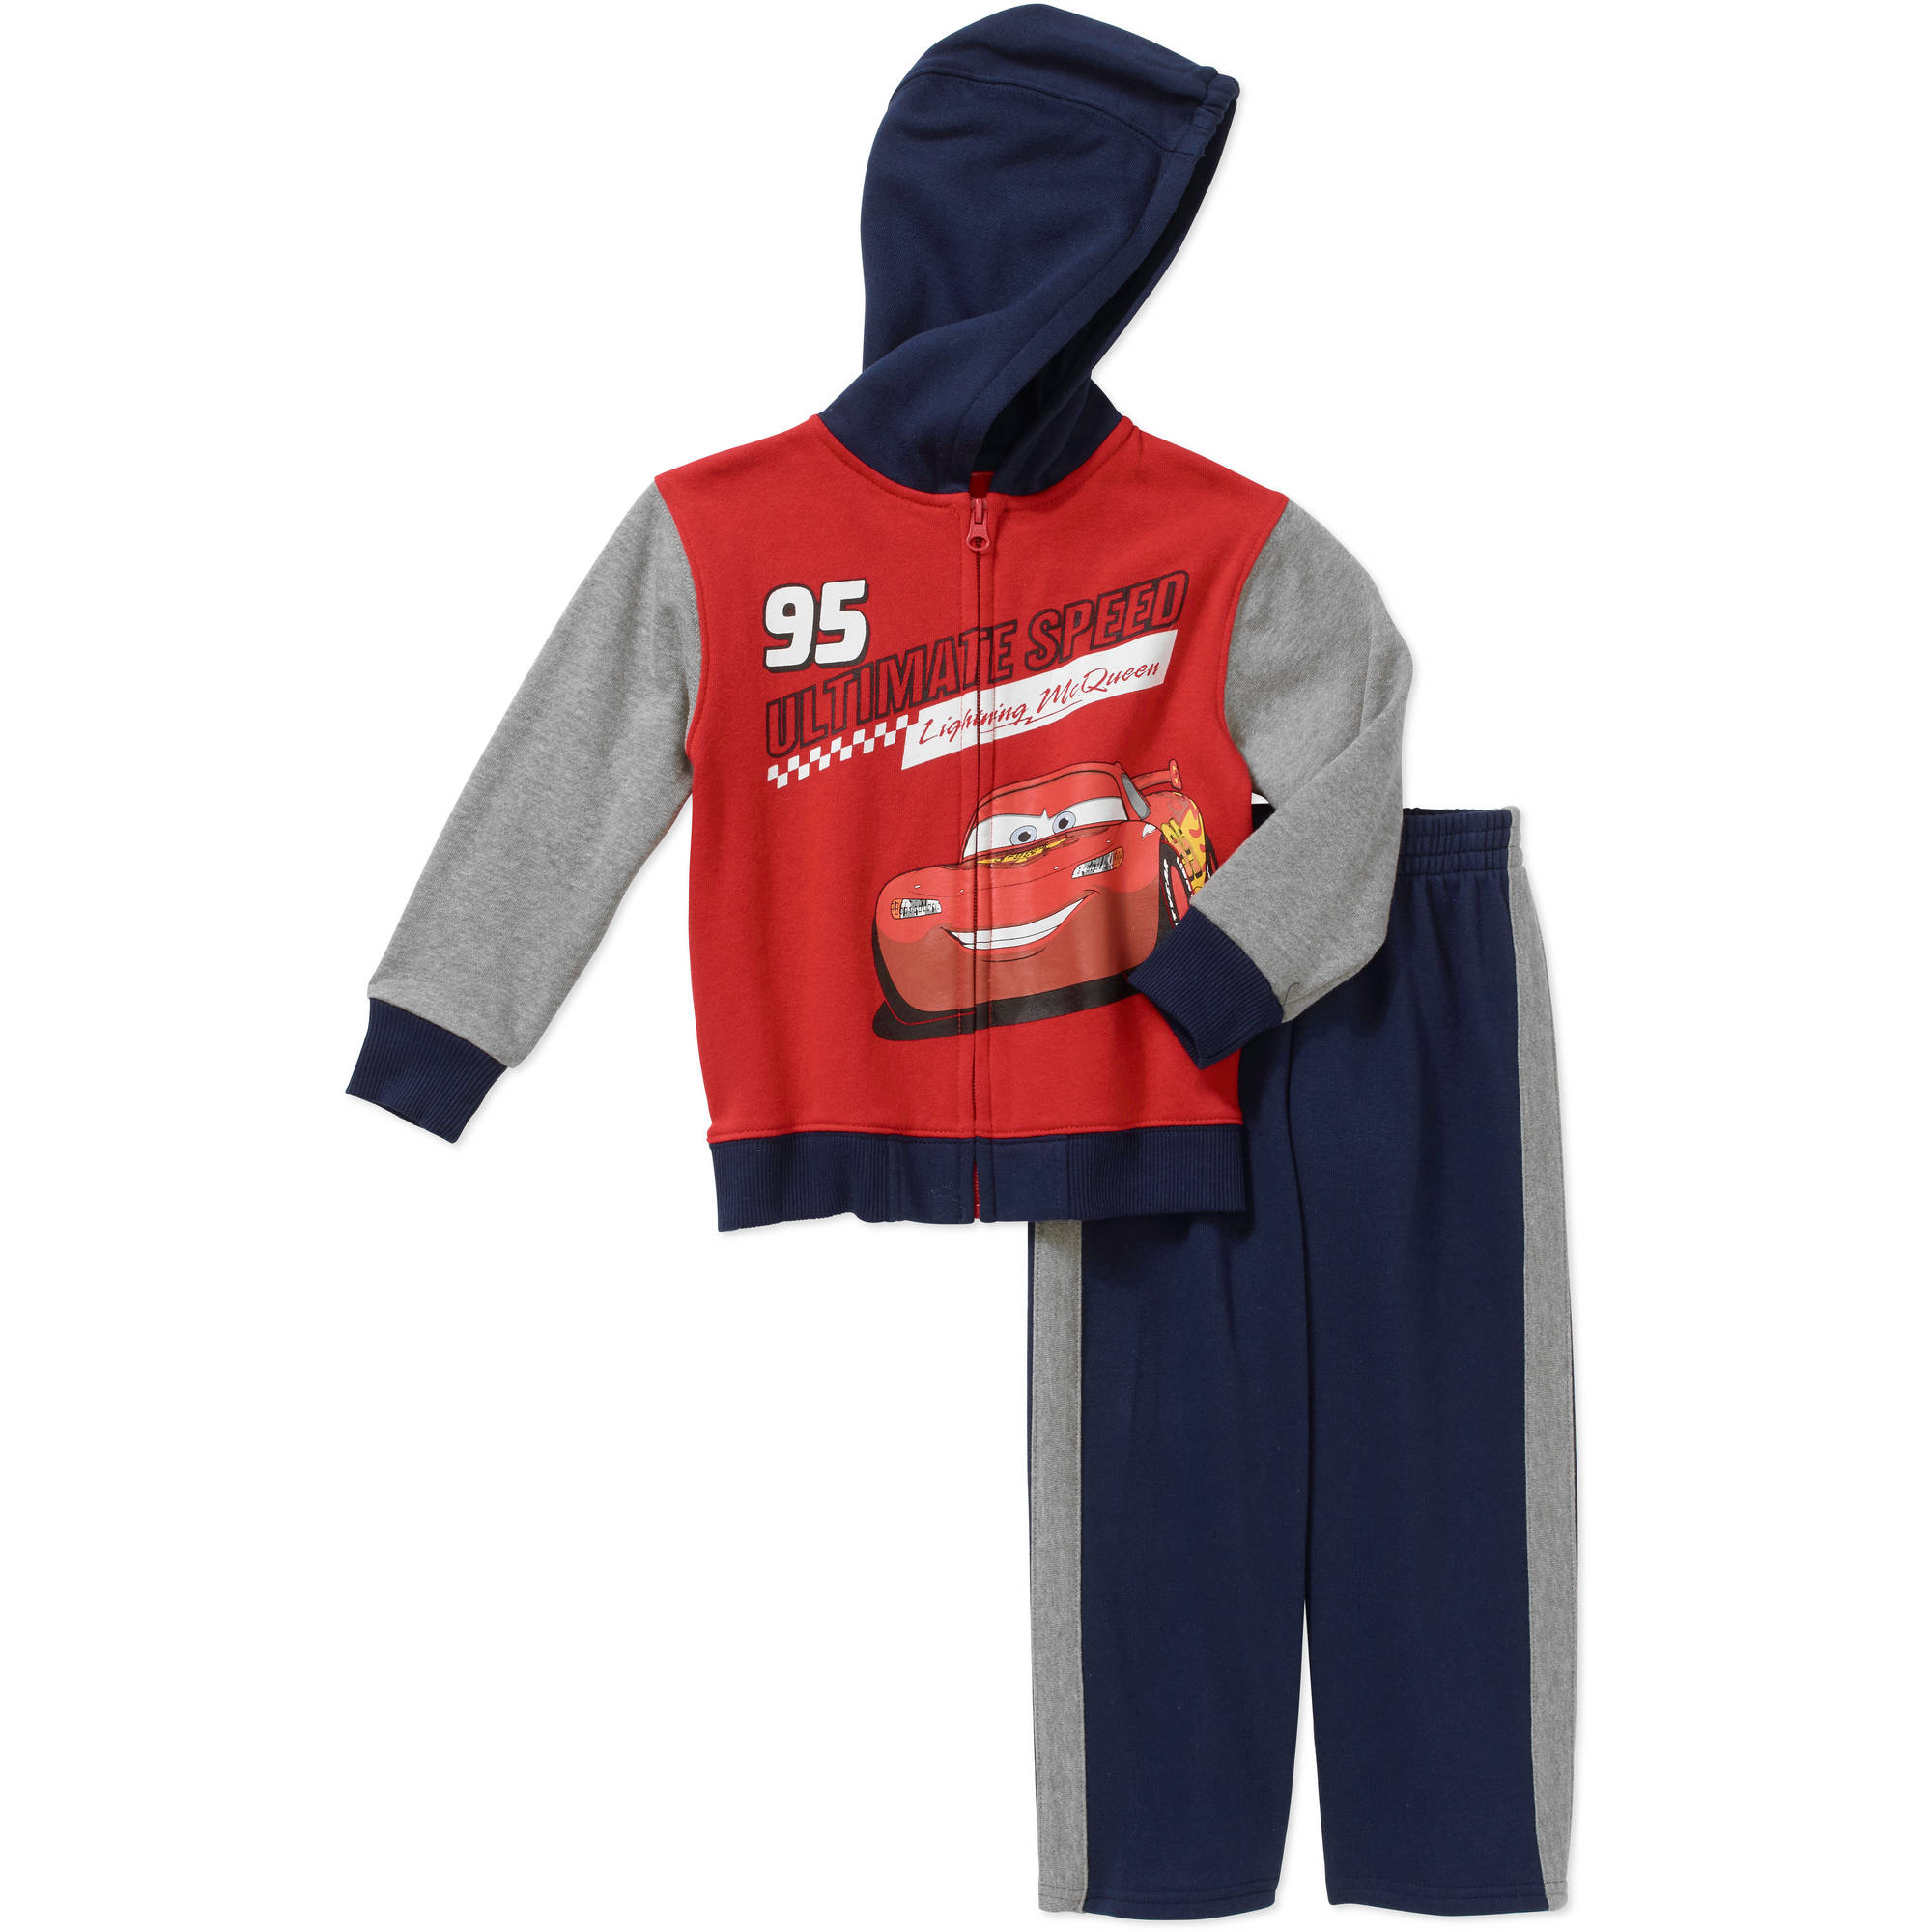 Disney Cars Baby Toddler Boy Zip Fleece Hoodie and Pants Outfit Set